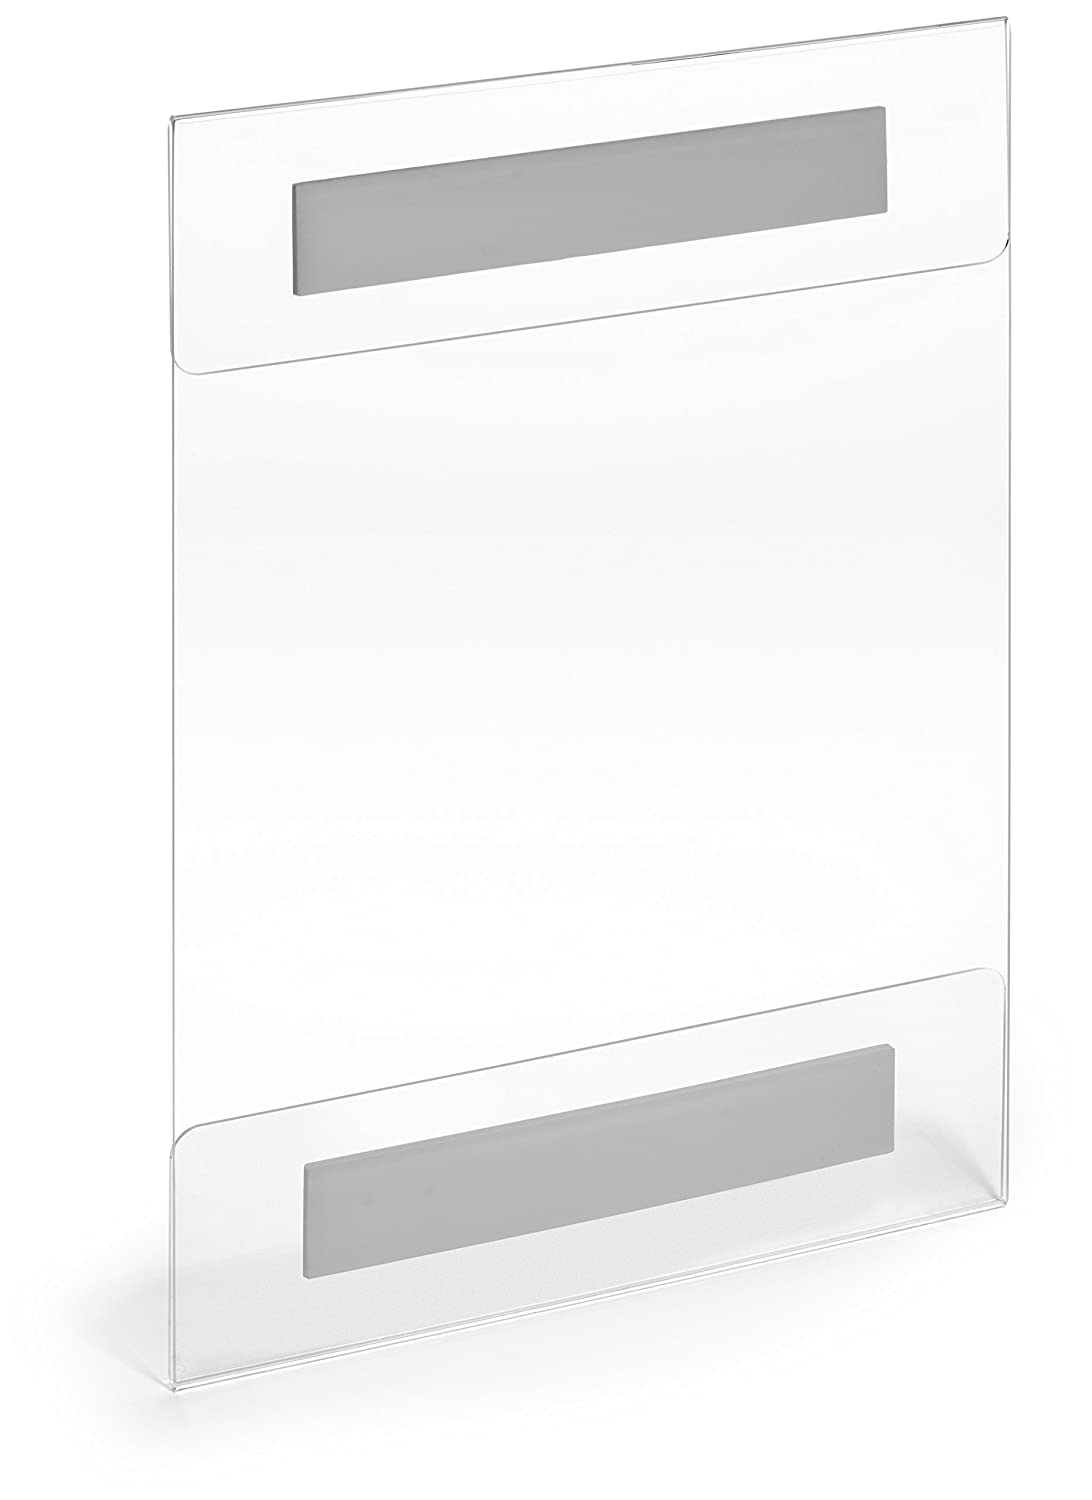 Amazon.com : 8.5 x 11 Acrylic Sign Holder Clear Wall Mount Adhesive ...